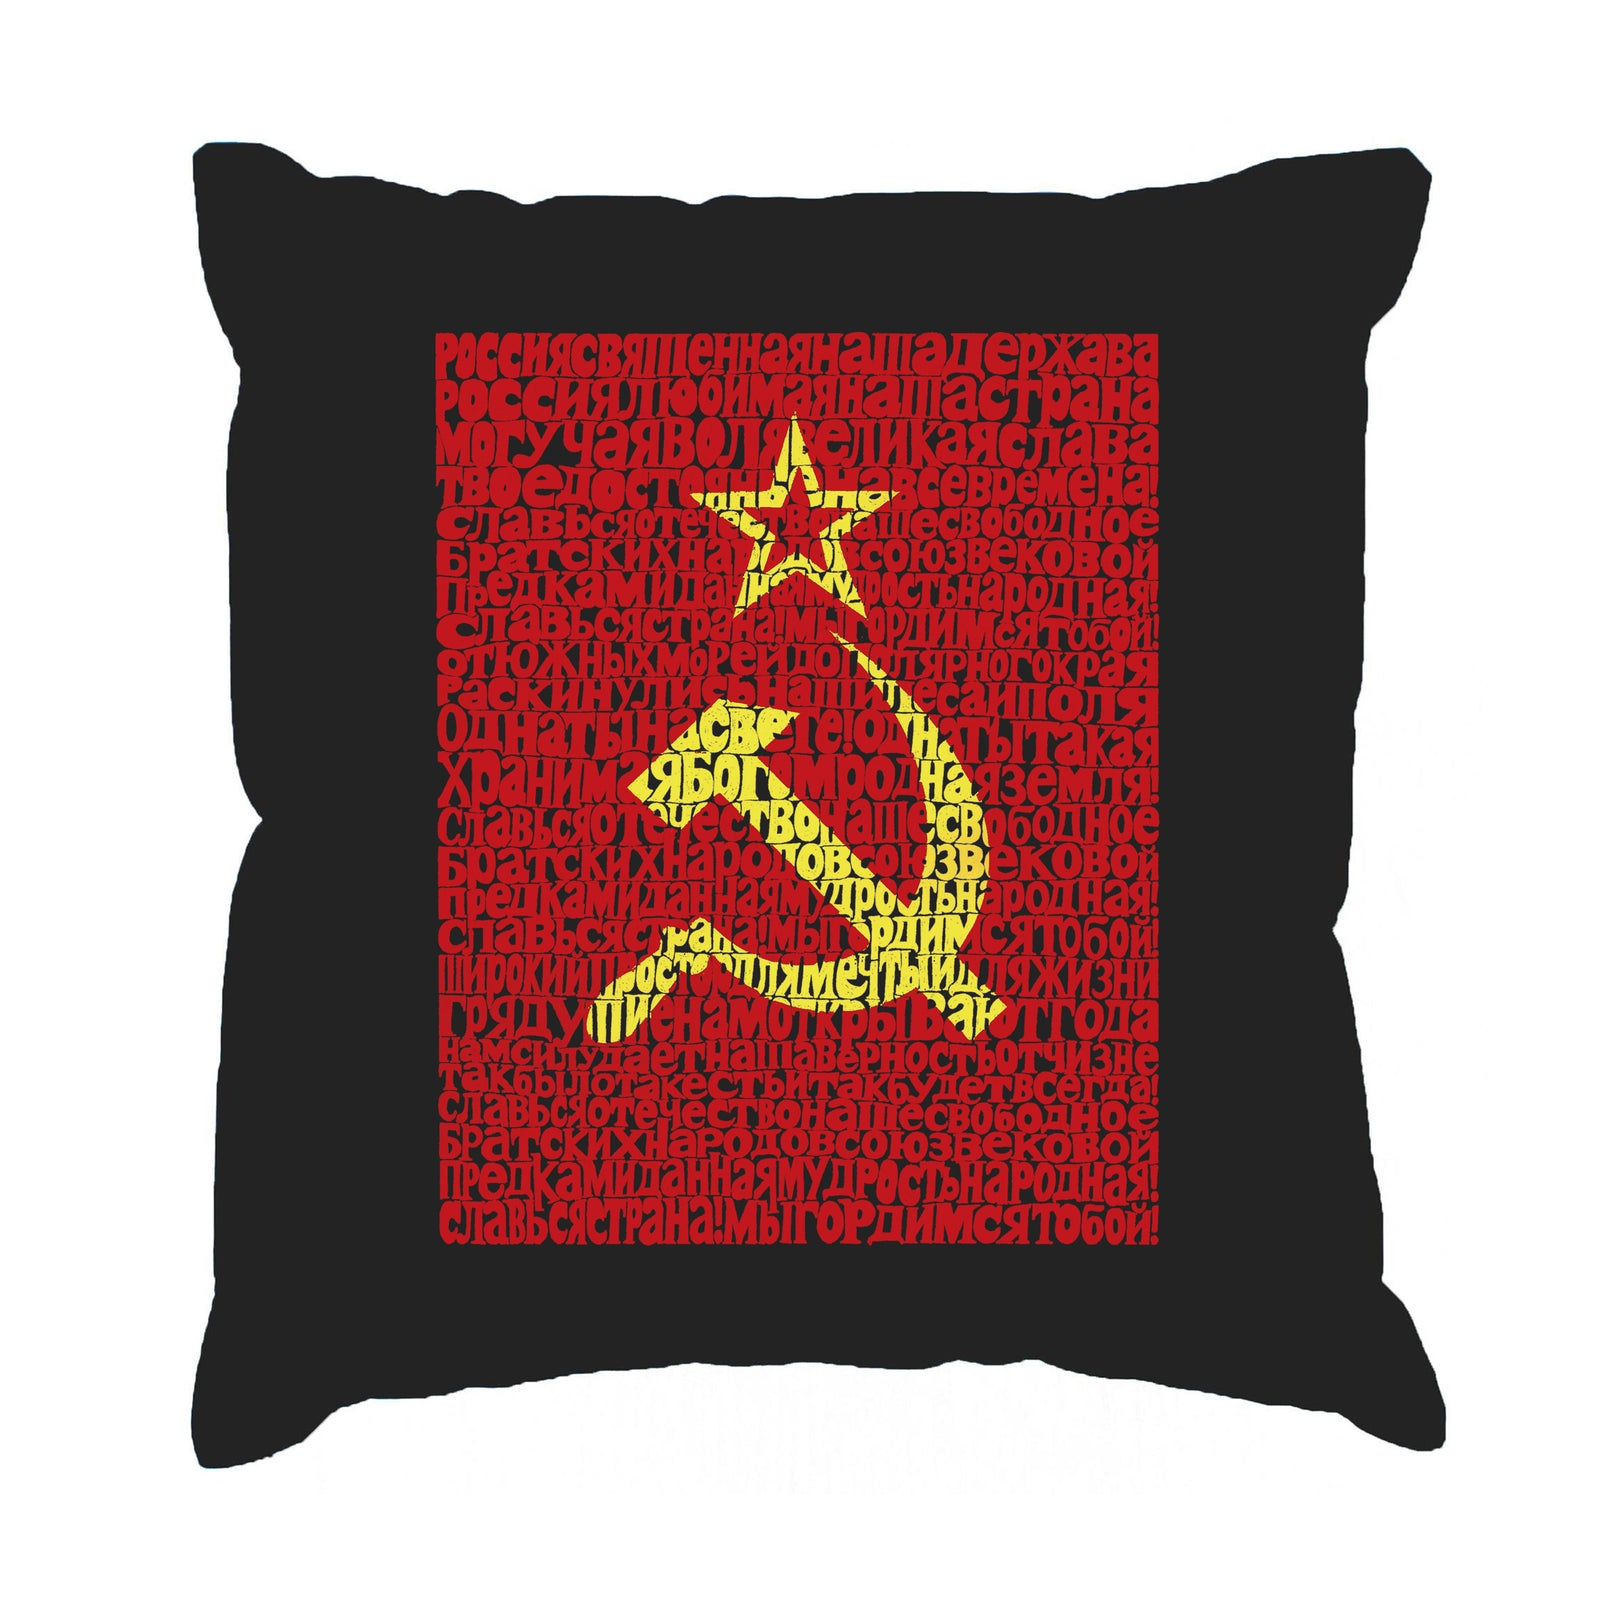 Throw Pillow Cover - Lyrics to the Soviet National Anthem